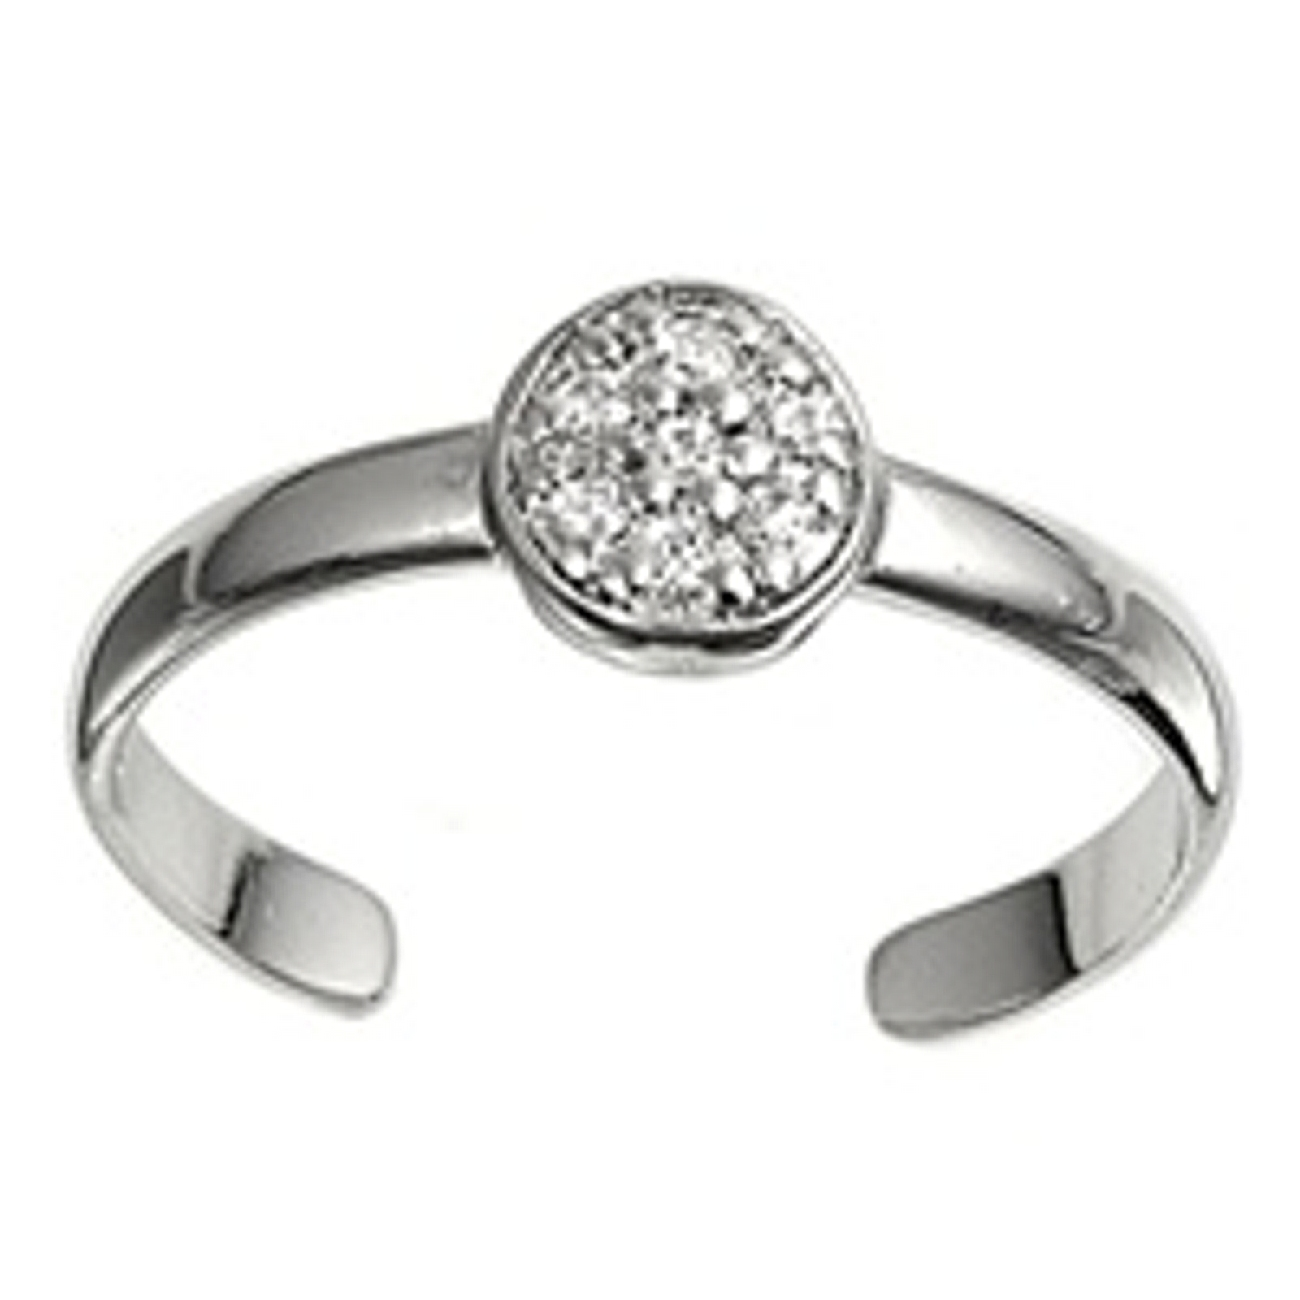 Clear Cubic Zirconia Round Top Adjustable Toe Ring